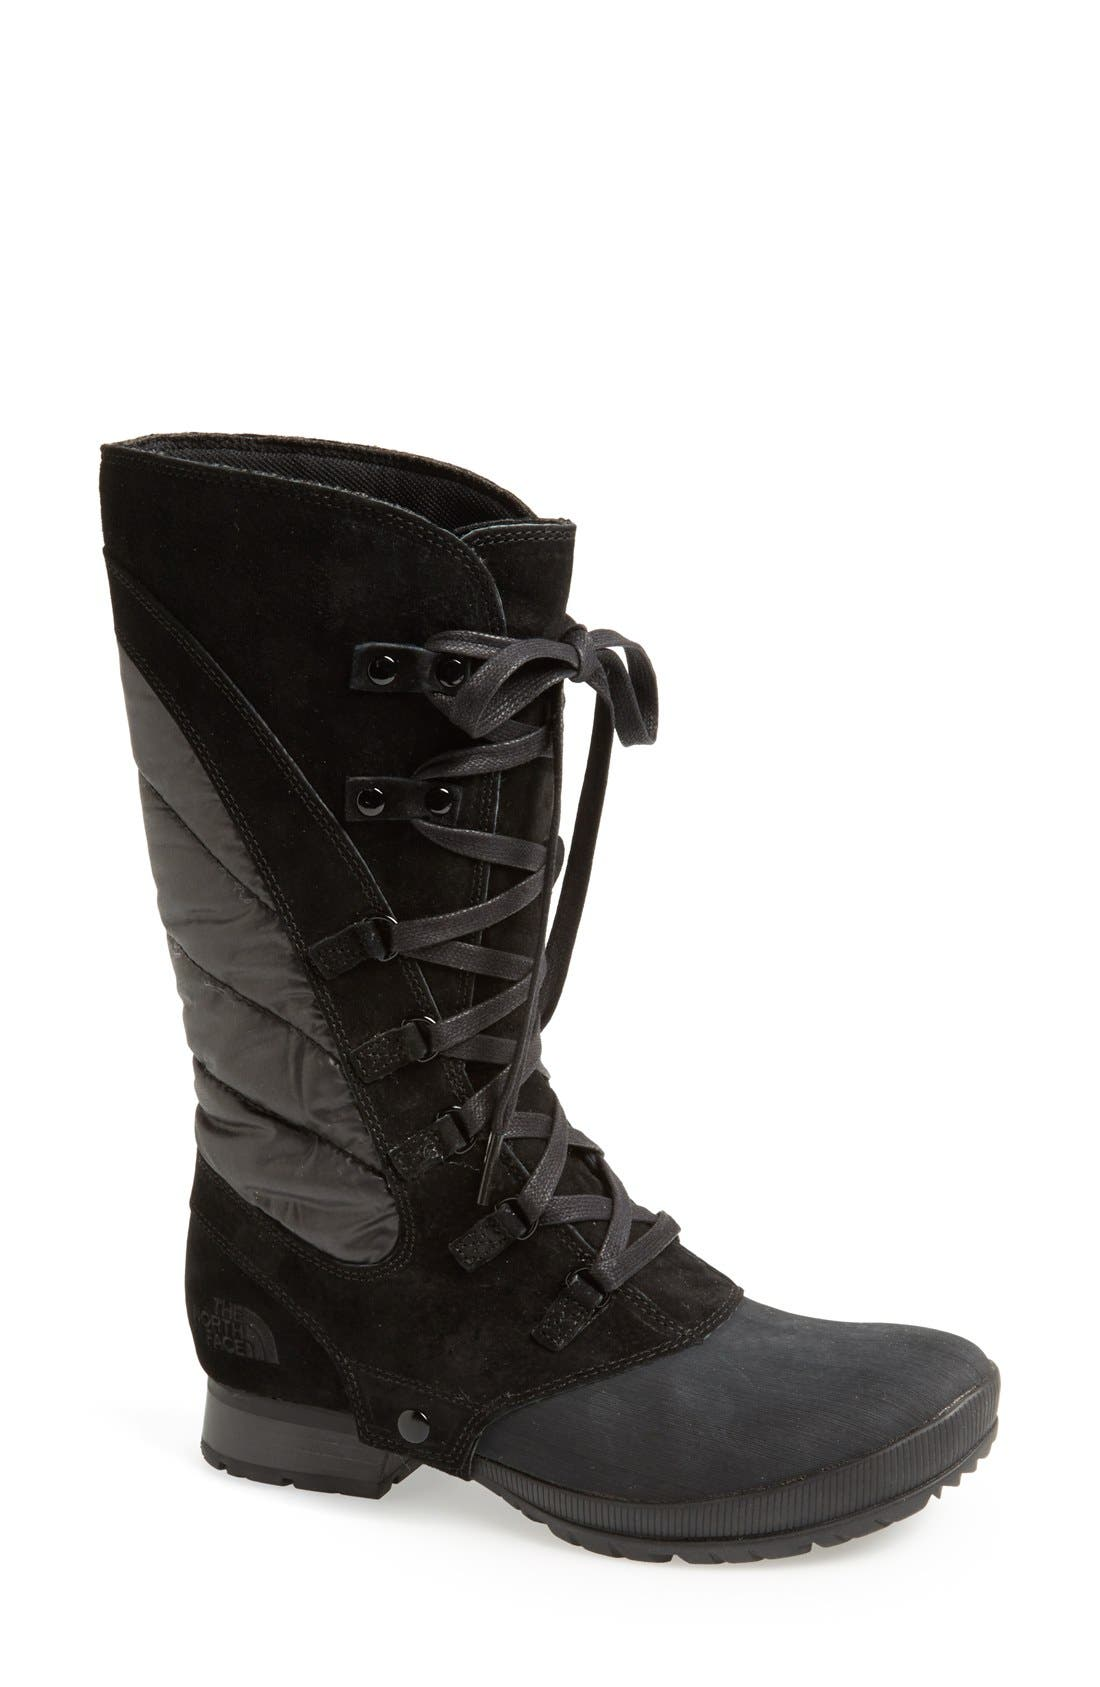 Alternate Image 1 Selected - The North Face 'Zophia' Waterproof Boot (Women)